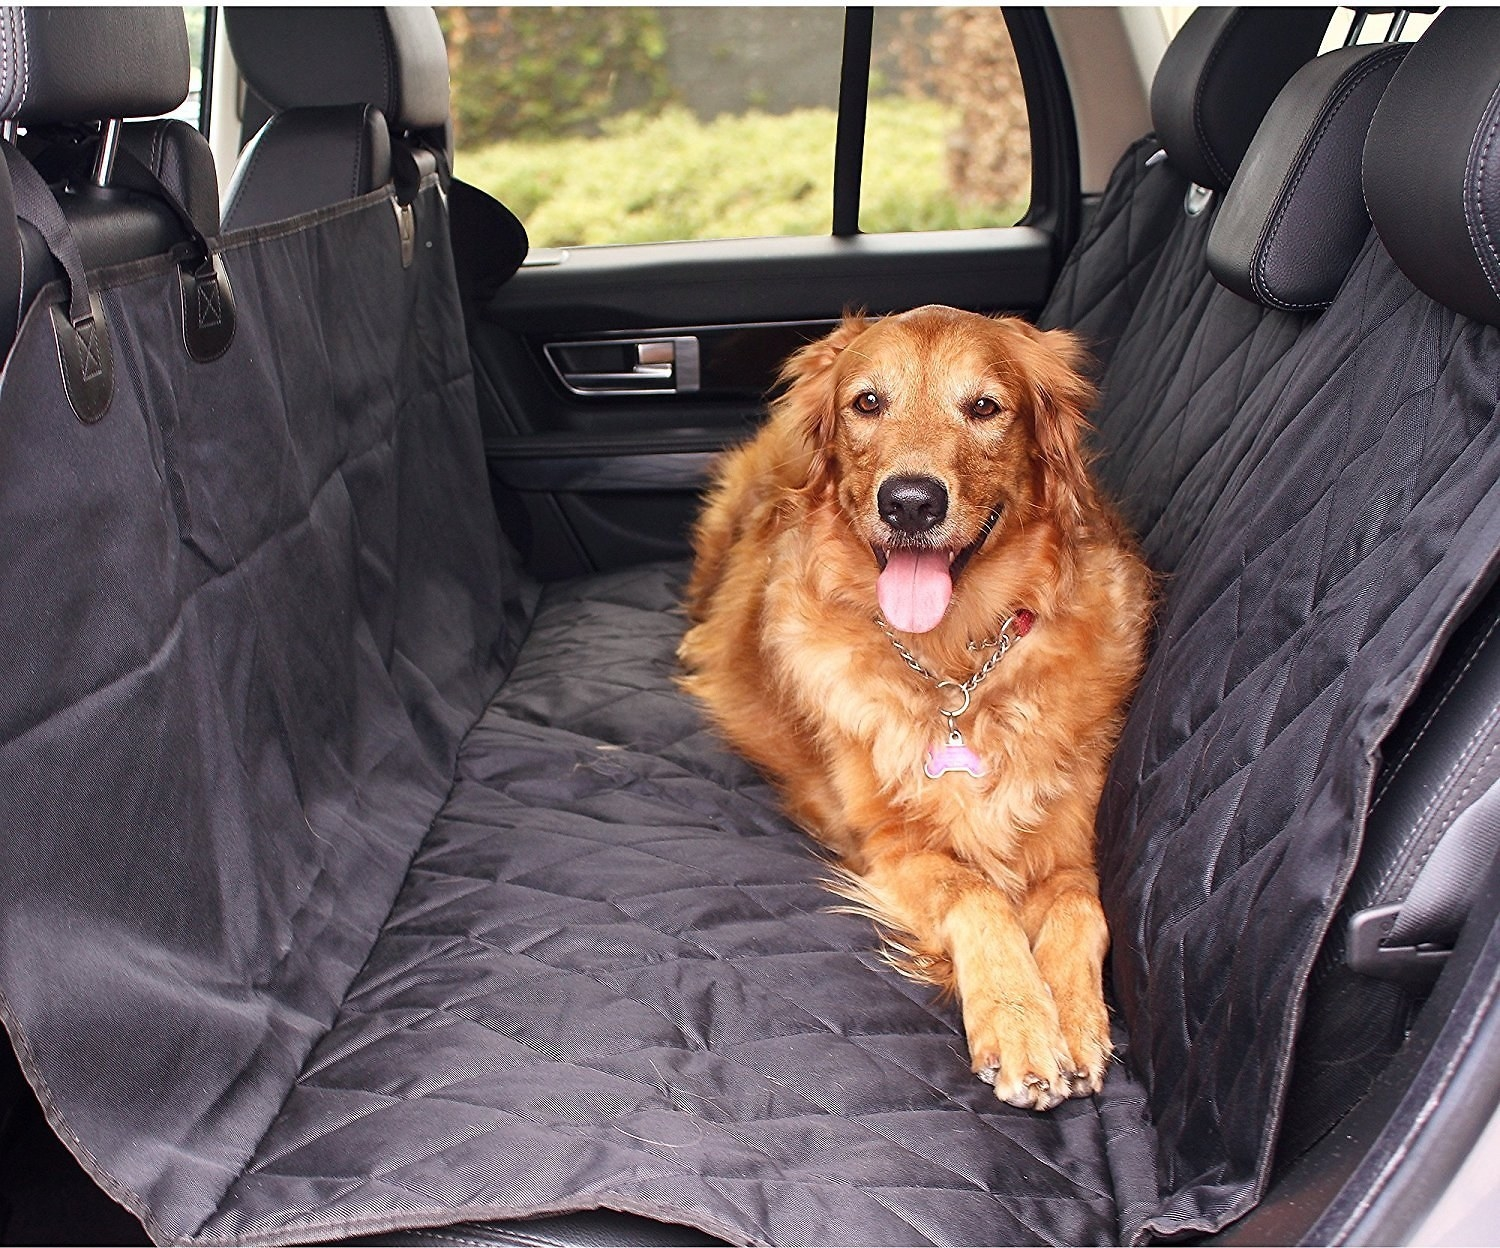 A dog sits on the seat cover